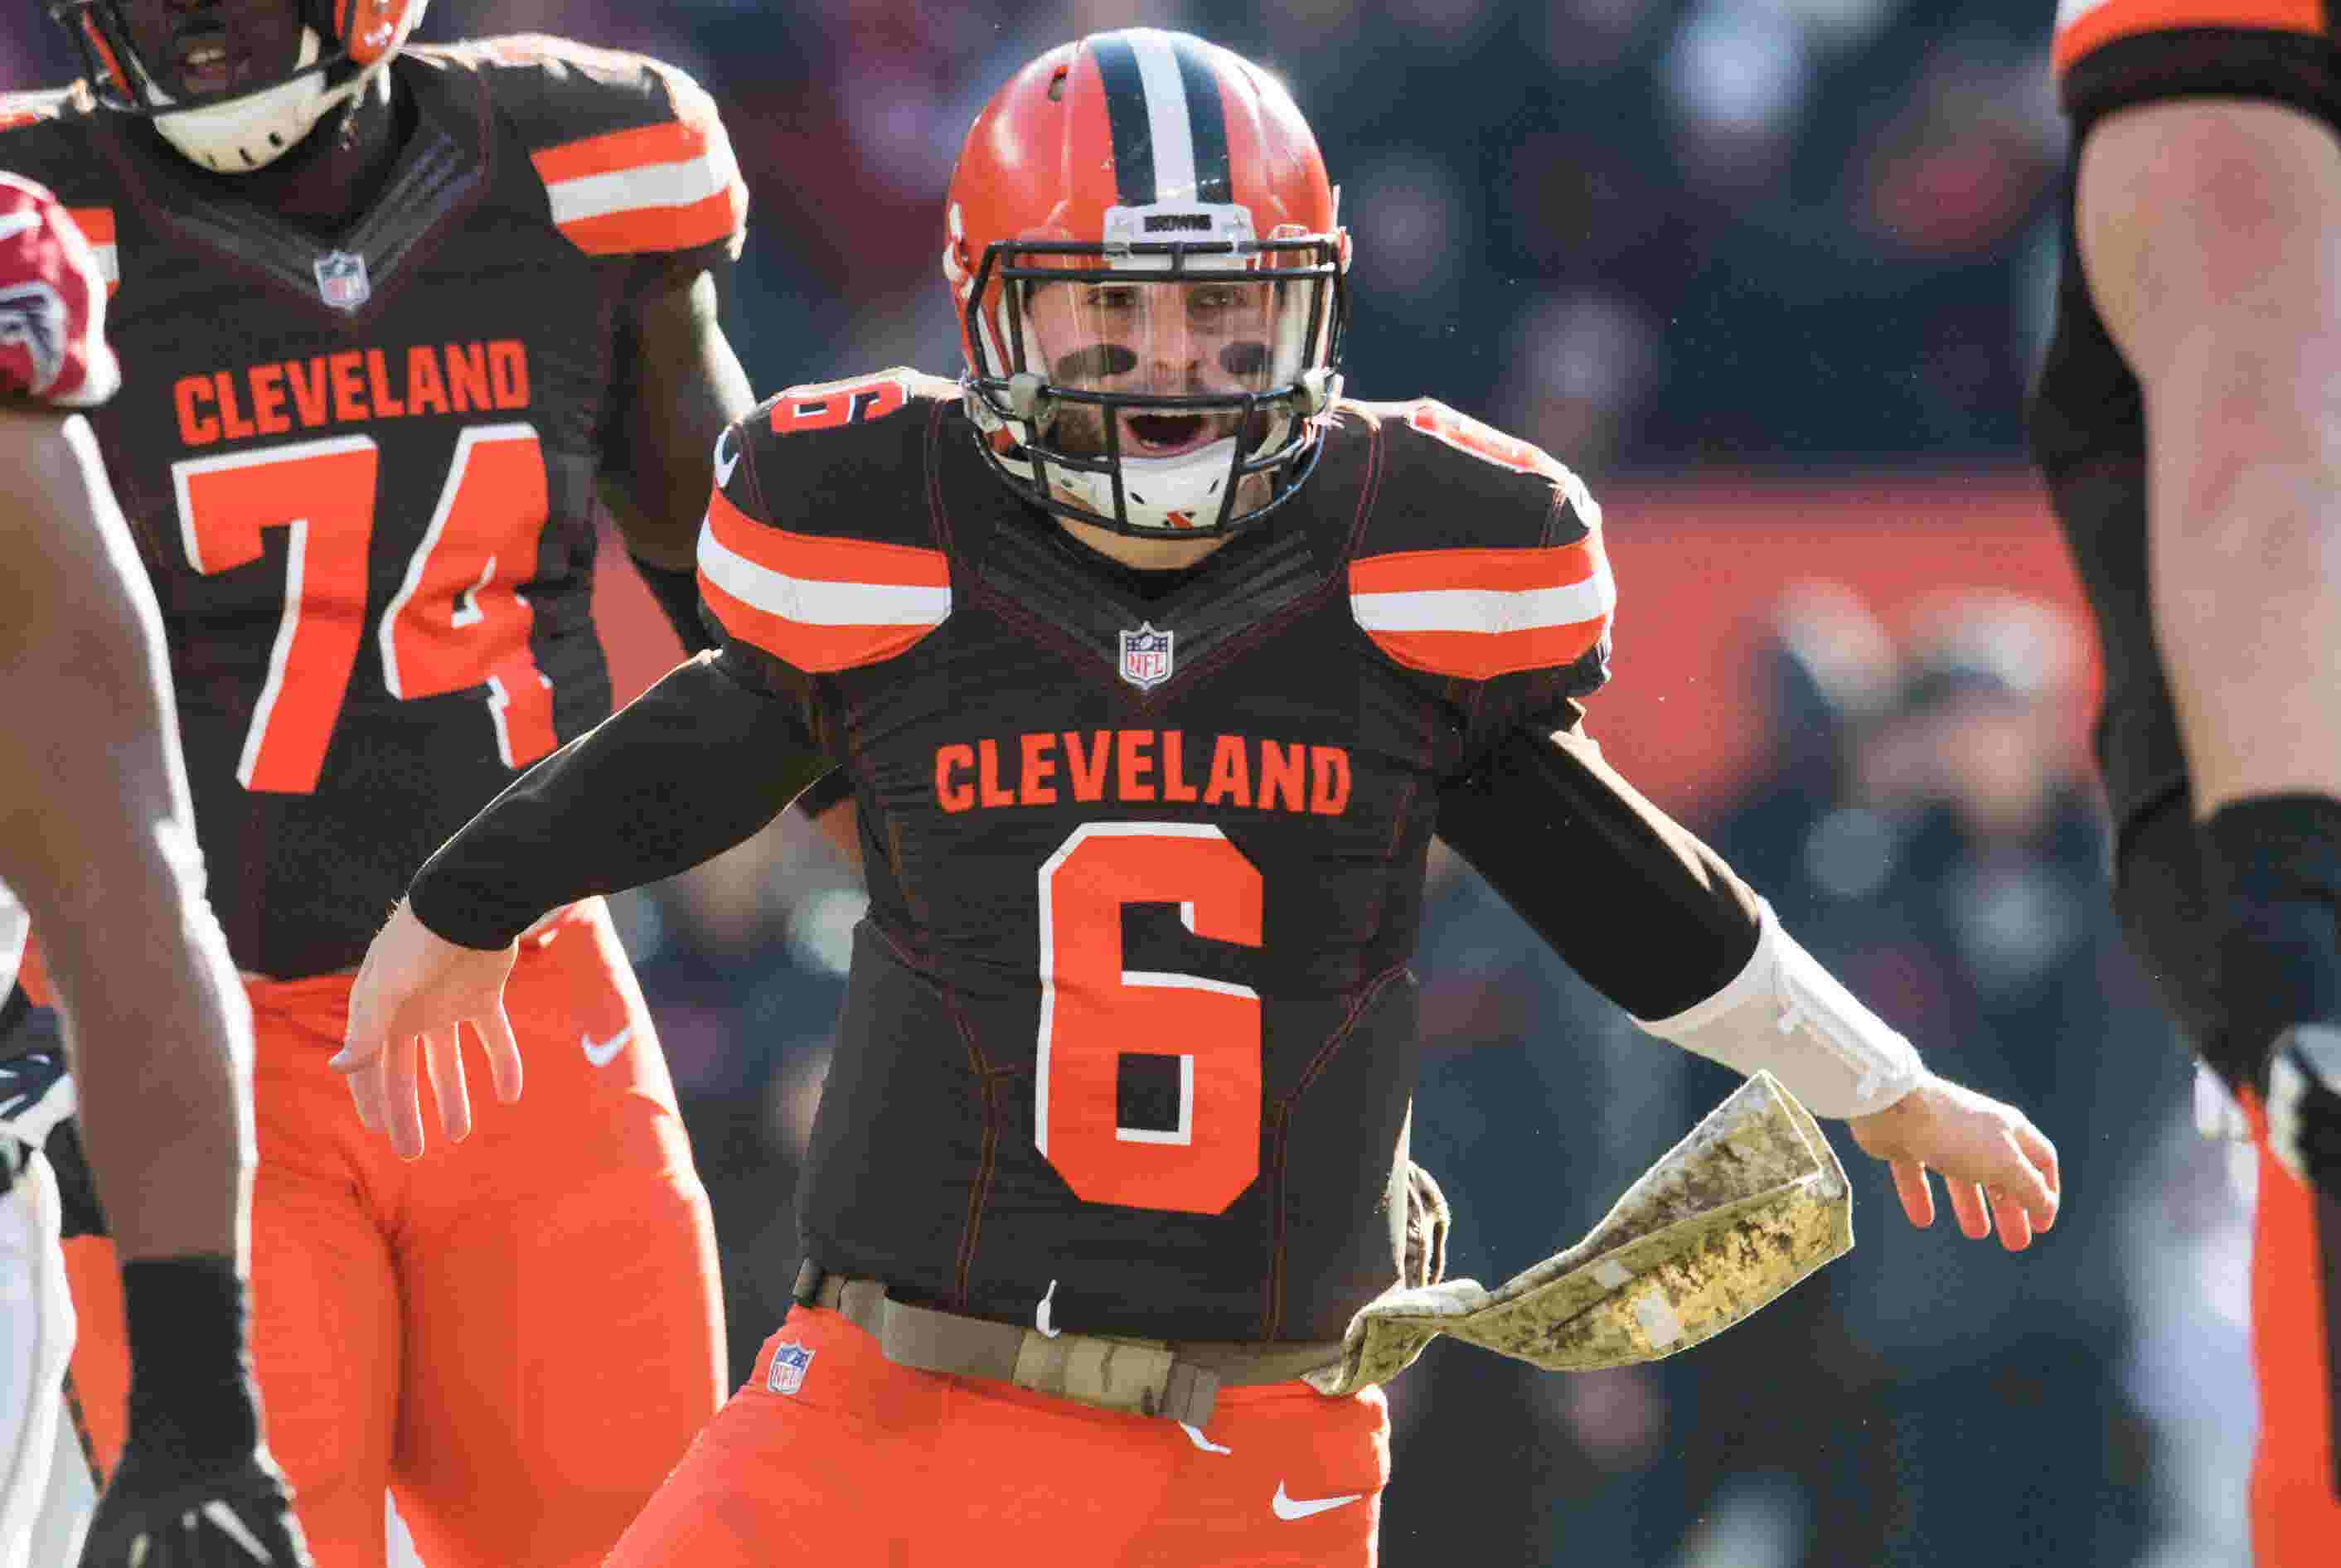 Brewers get a visit from Cleveland Browns quarterback Baker Mayfield bac4f9a5a